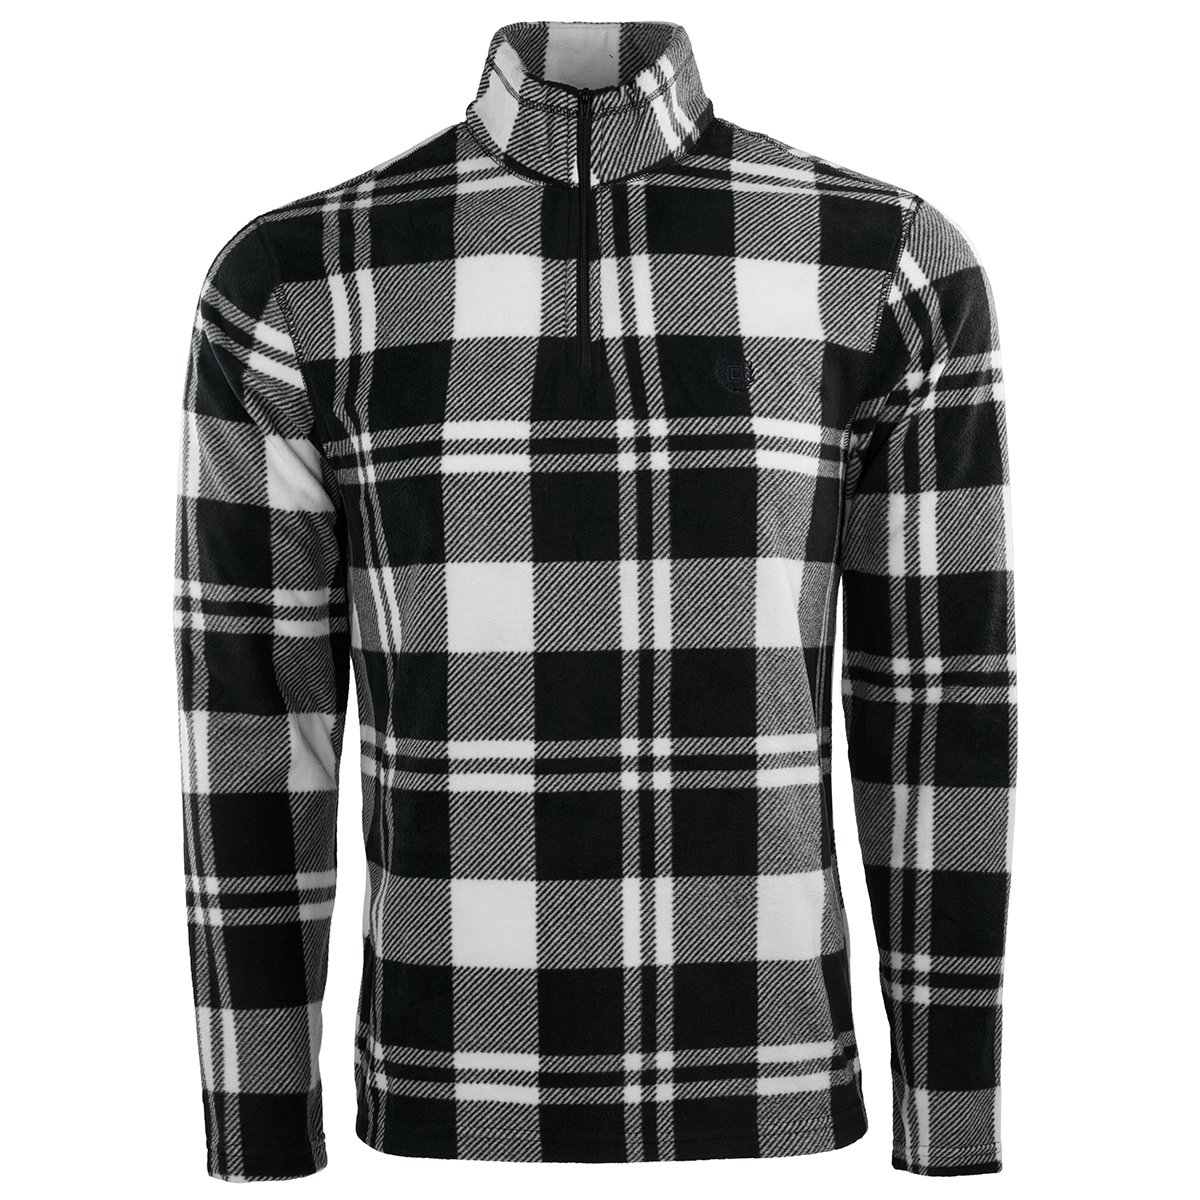 Chaps-Men-039-s-Fleece-Flannel-1-4-Zip-Jacket